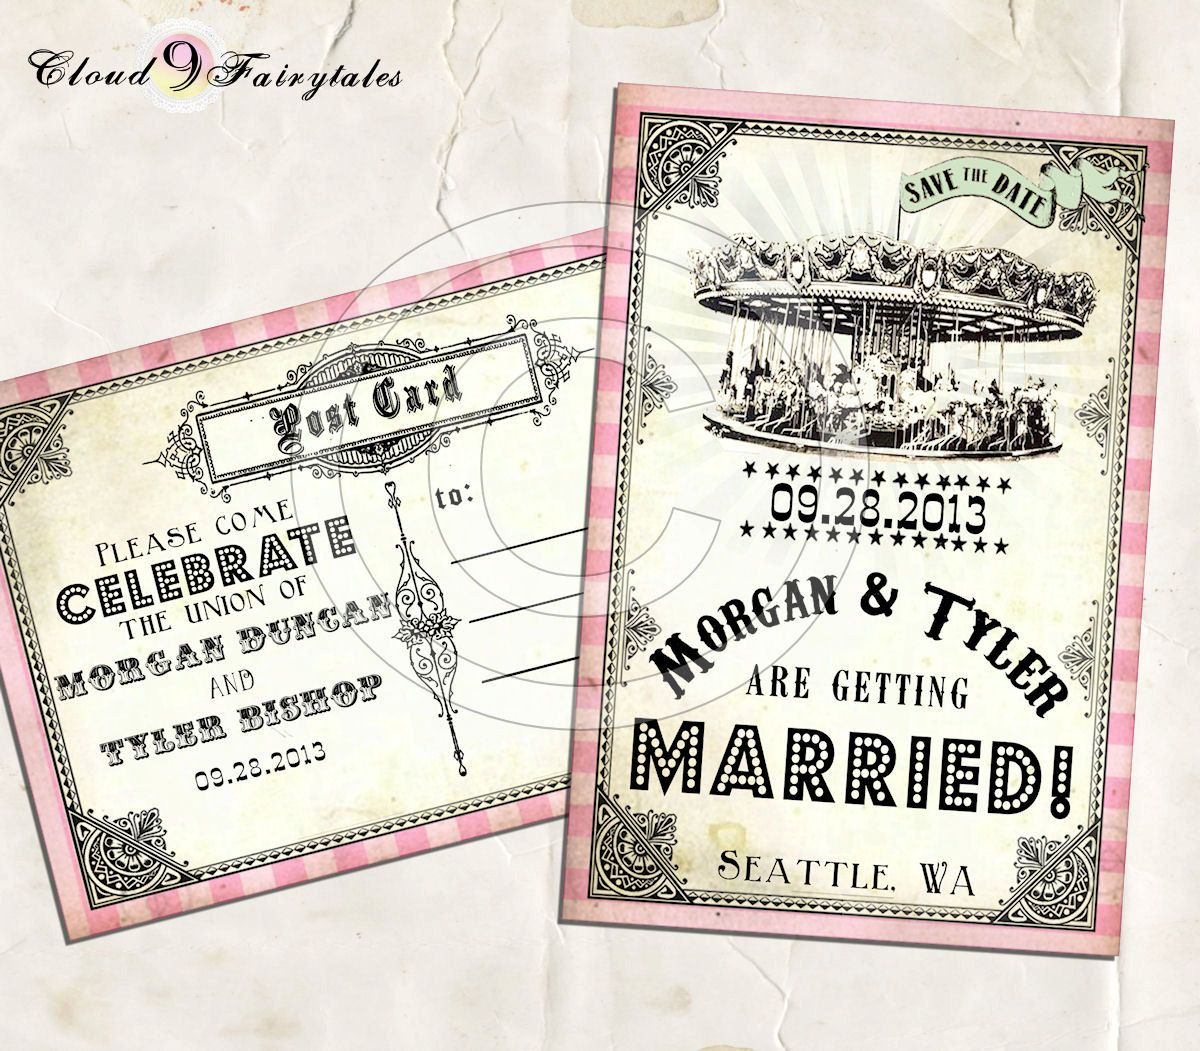 Carousel Save The Date Vintage Postcards Wedding Invitations